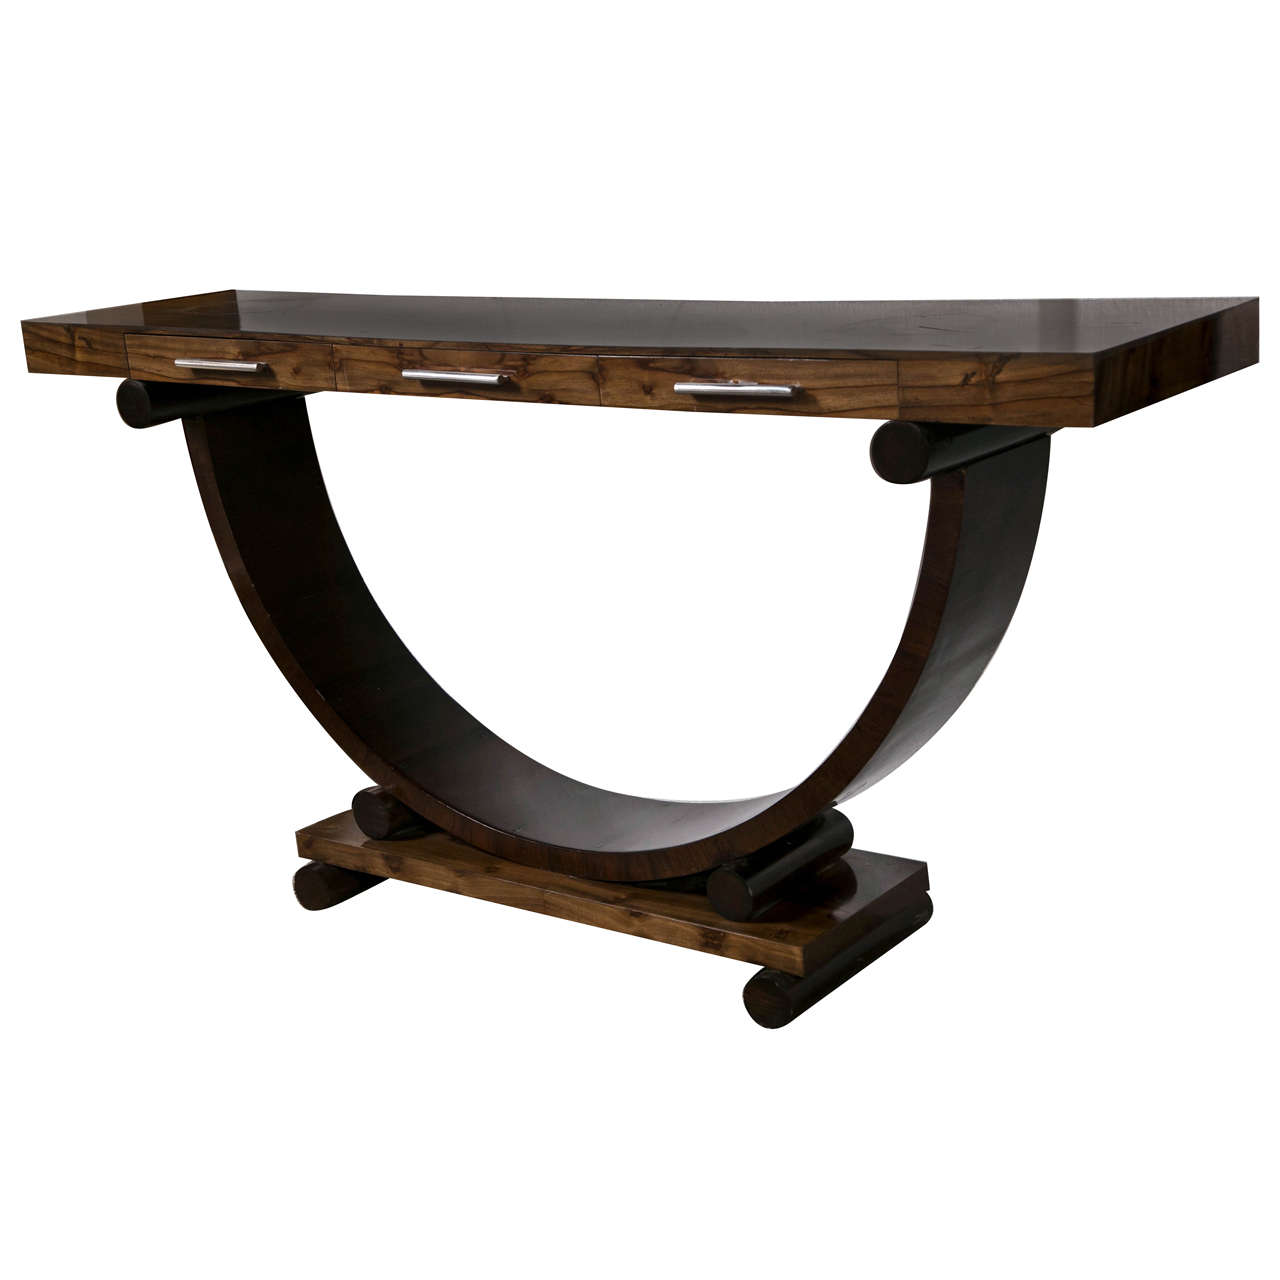 art deco style rosewood console table at 1stdibs art deco style rosewood